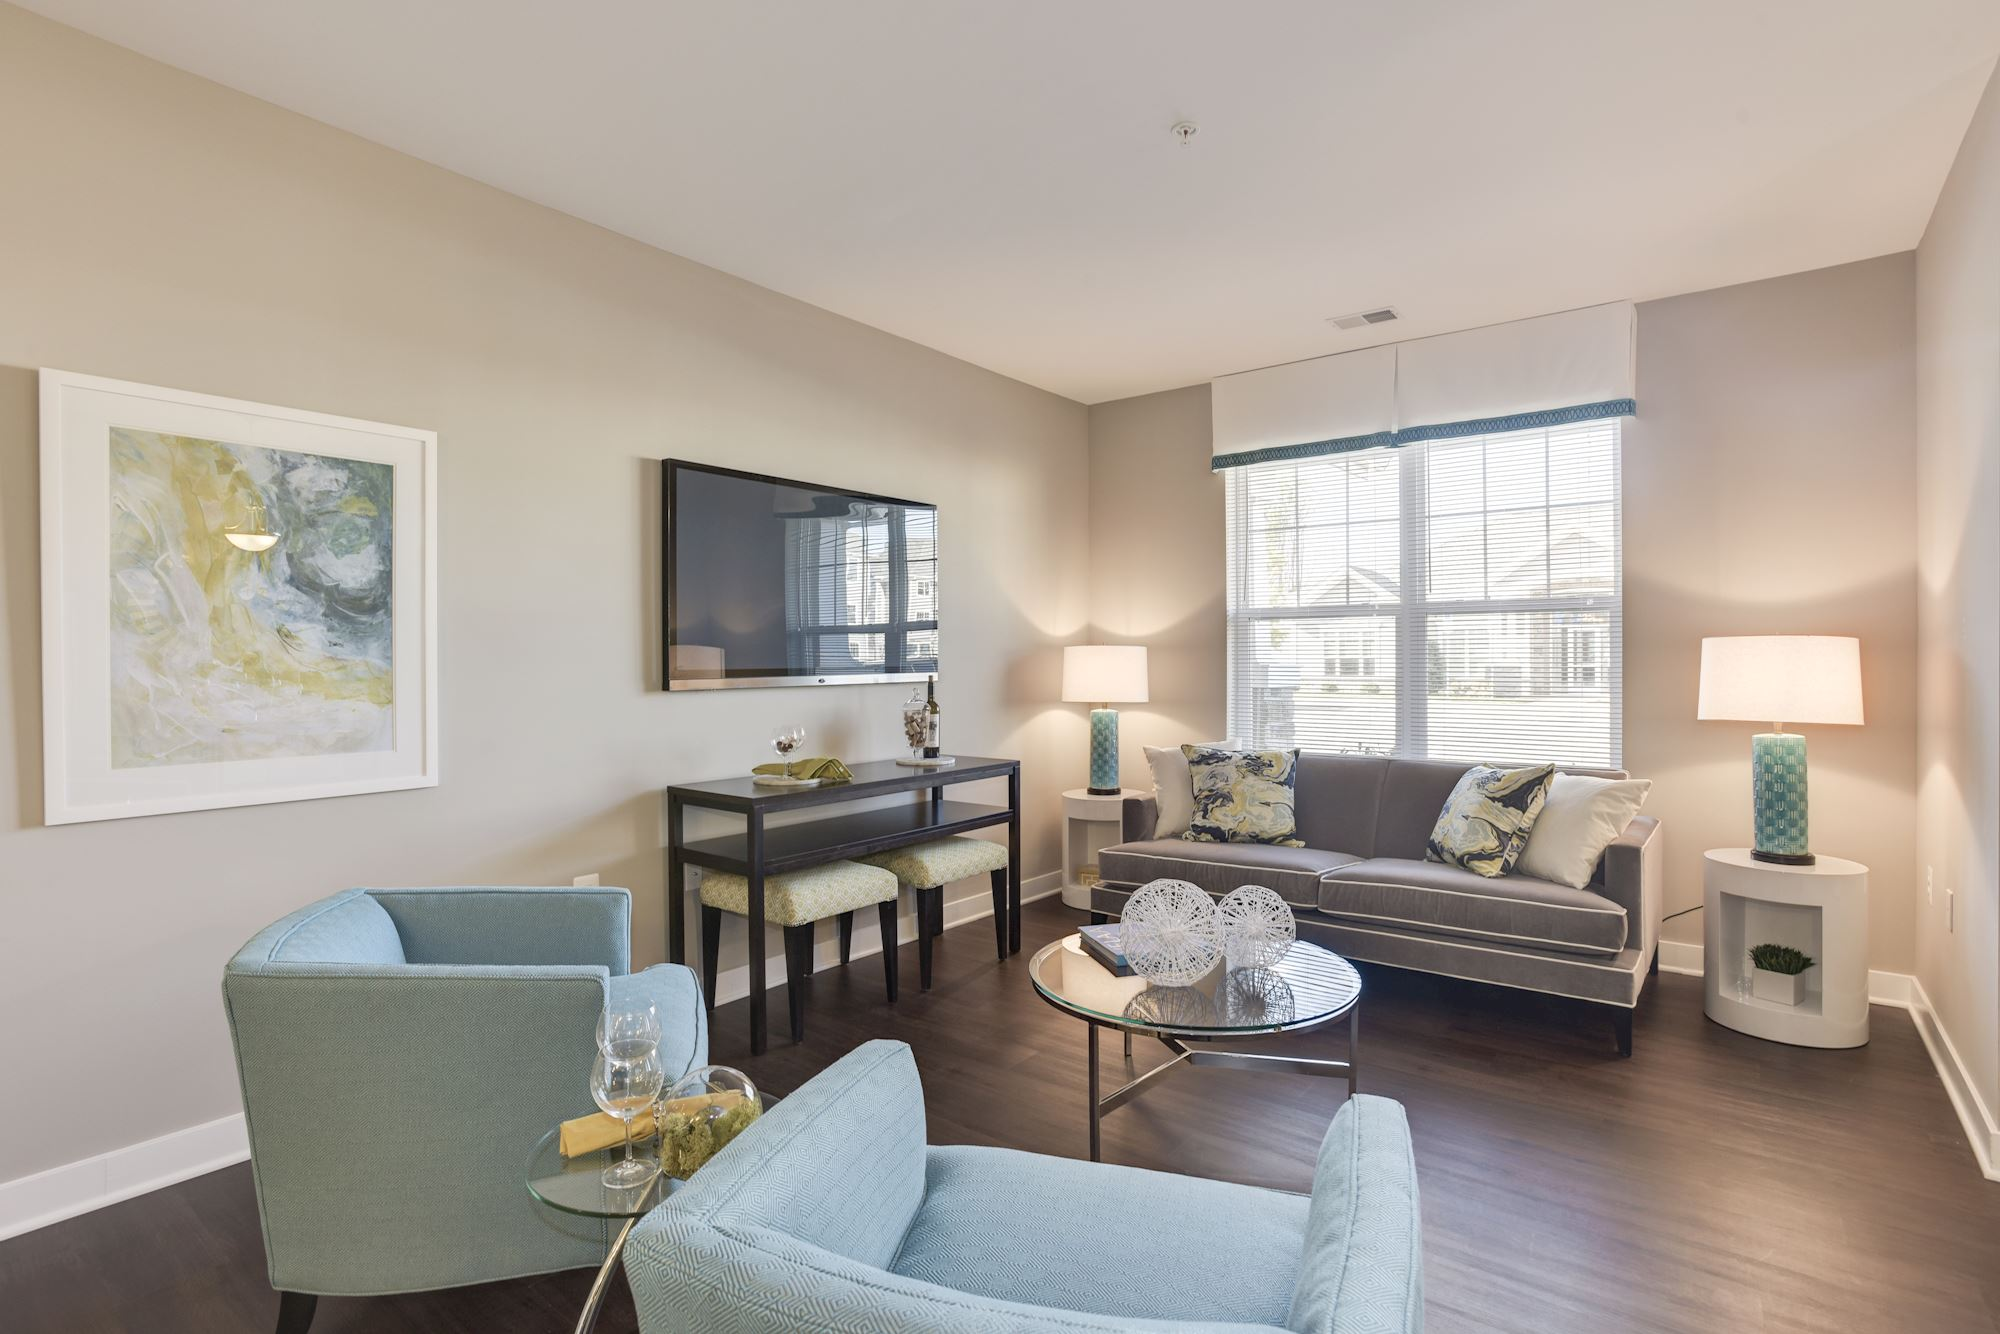 Avanti Luxury Apartments in Bel Air, MD - Living Room